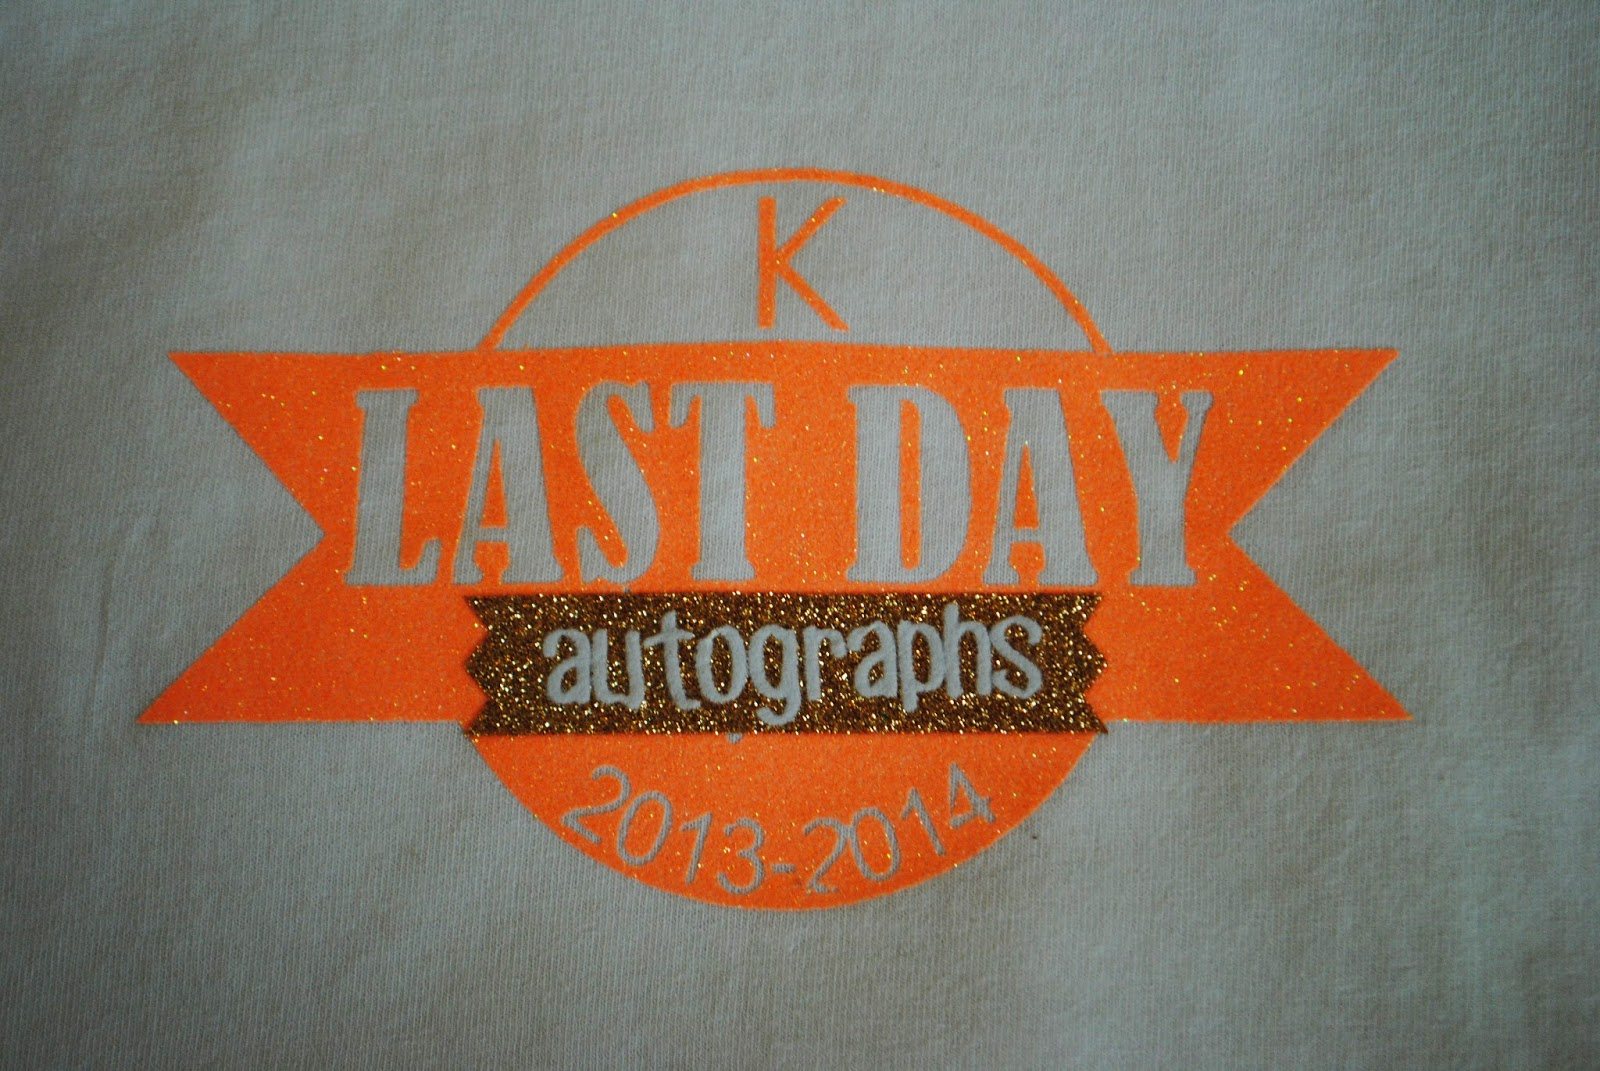 Shirt, autograph, last day of school, free, Silhouette Studio, cut file